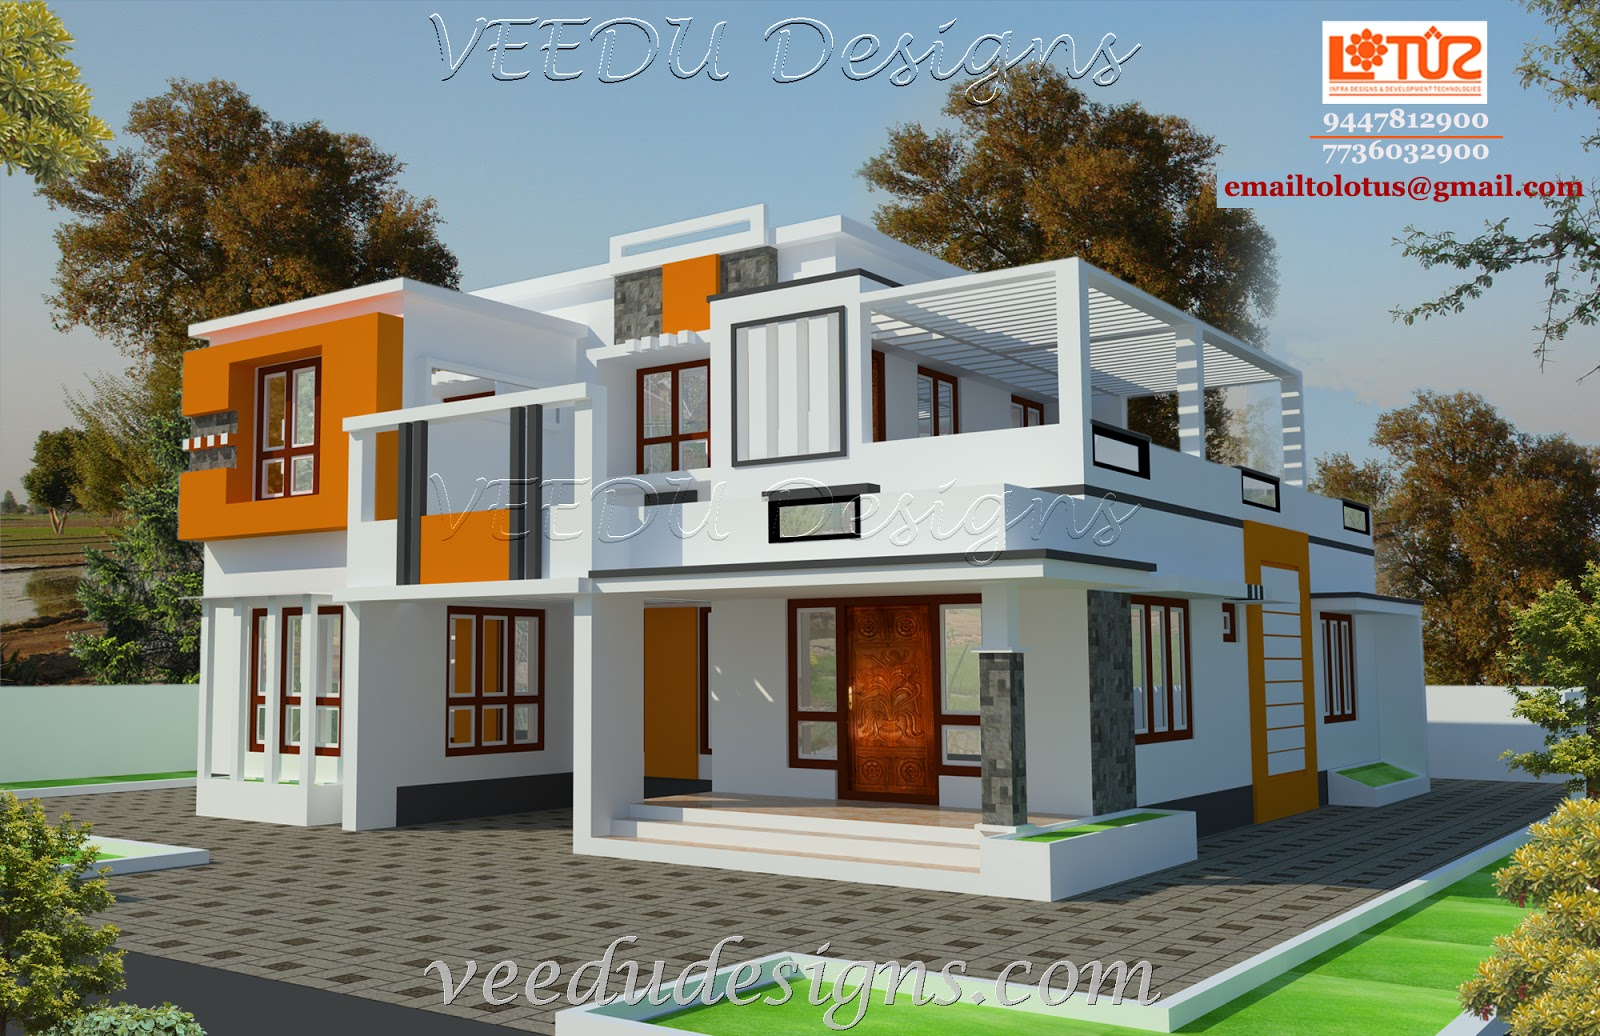 Veedu designs kerala home designs Home design